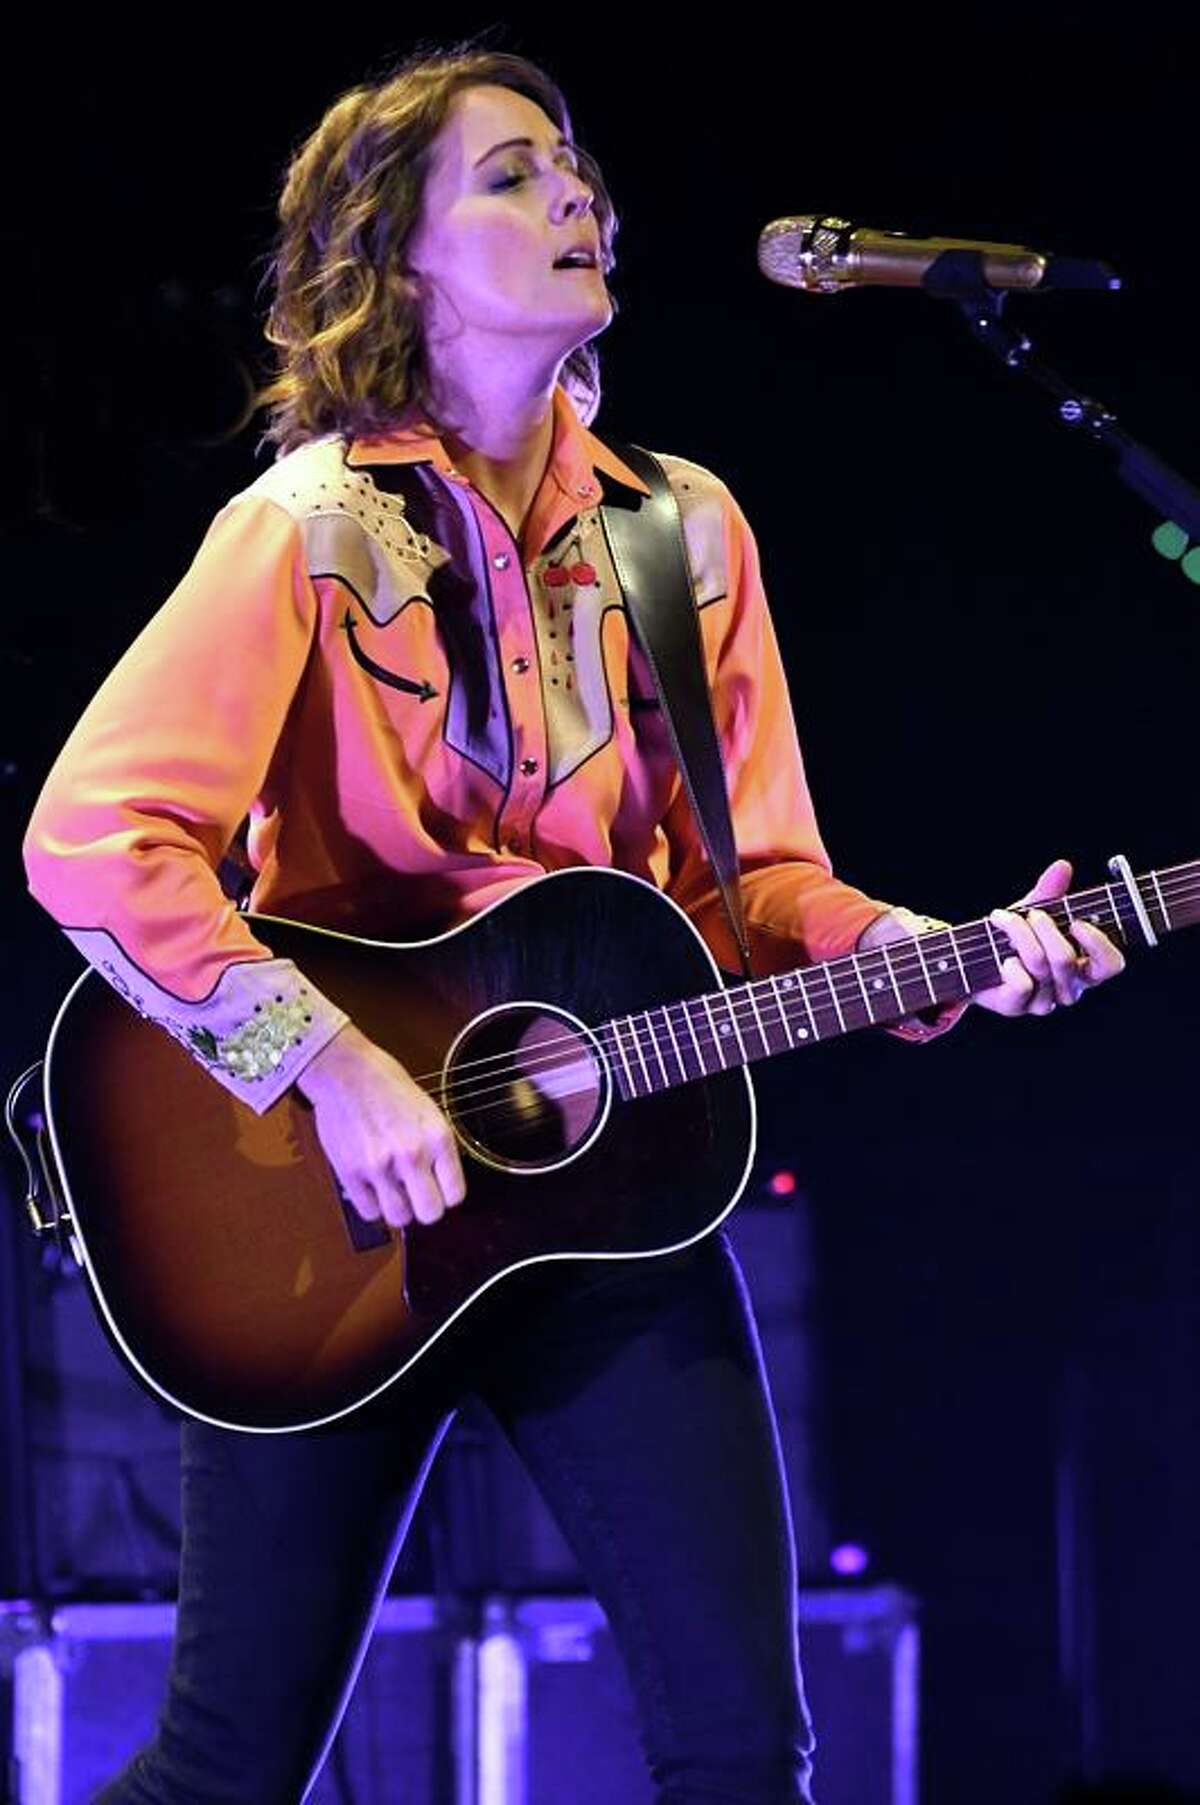 Musician Brandi Carlile is shown performing to capacity crowd in the Grand Theater at the Foxwoods Resort Casino on Oct. 24. The Seattle based singer's career is on a serious roll. Earlier this year, she won three Grammy Awards for her most recent album,